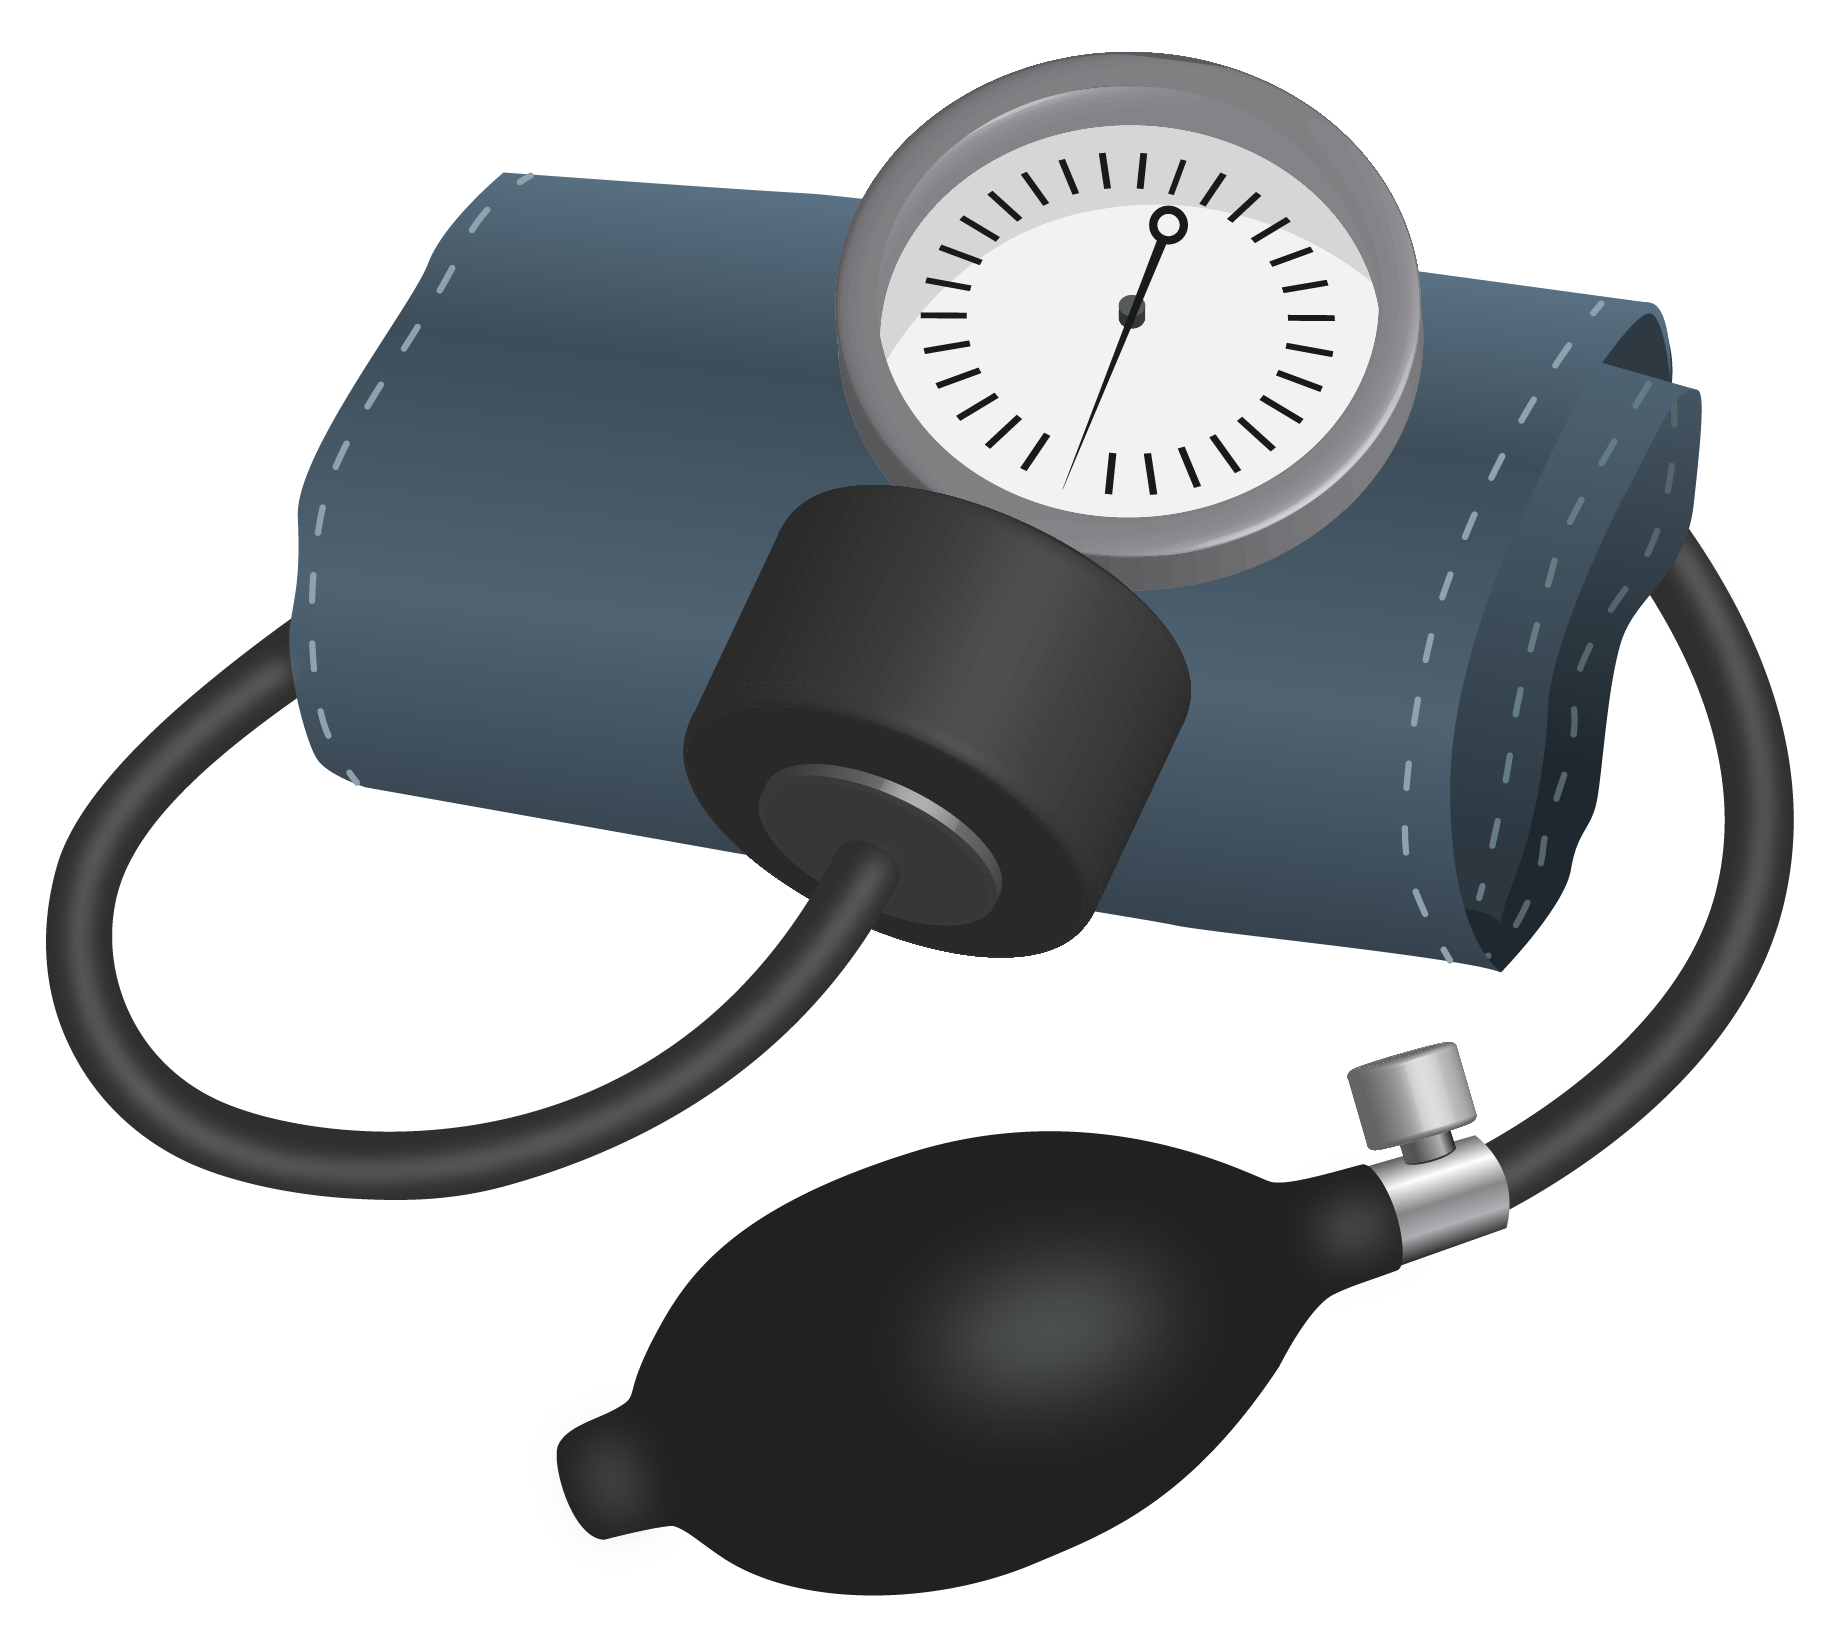 blood pressure gauge clipart 20 free cliparts